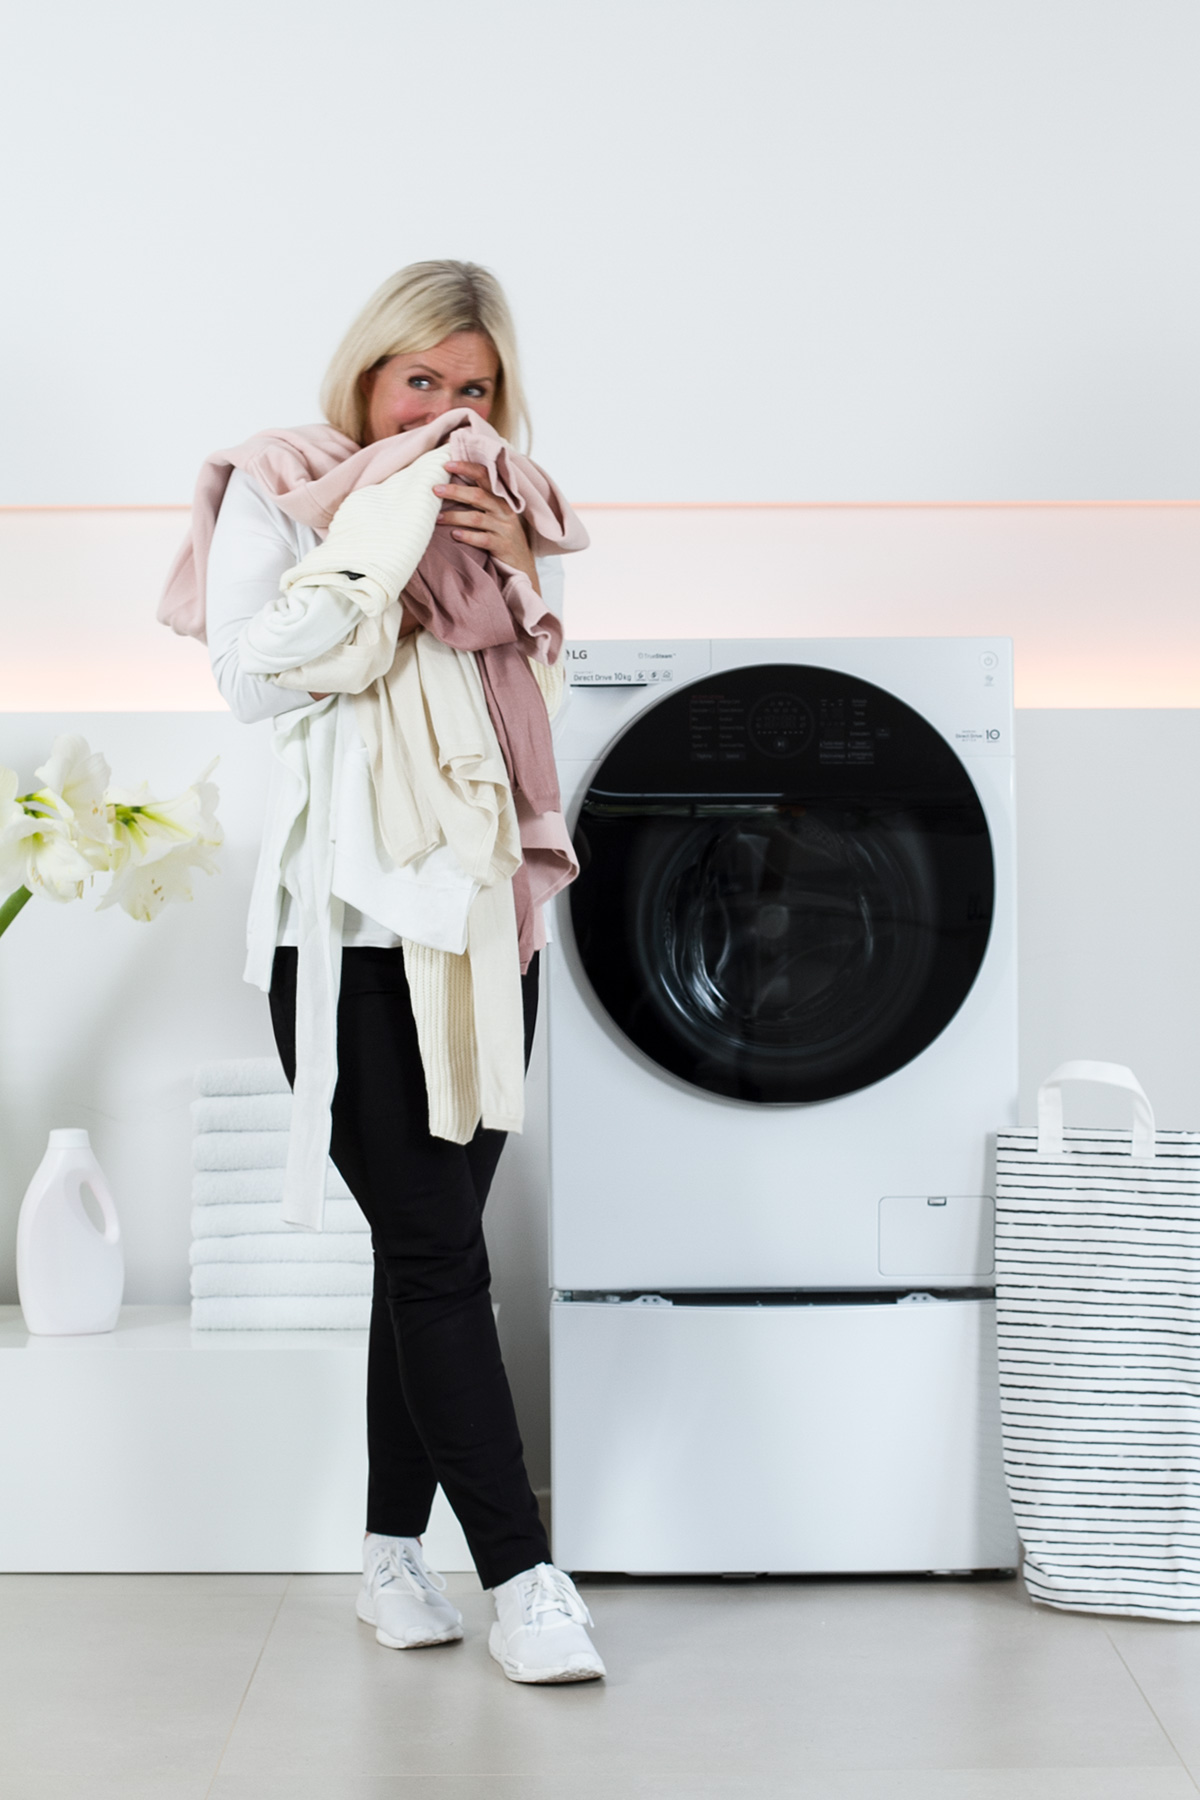 women standing in front of a washer, washing machine, holding laundry in her hands, white flowers, liquid laundry detergent bottle, picture from LG TwinWash blog post on lifetime-pieces.com